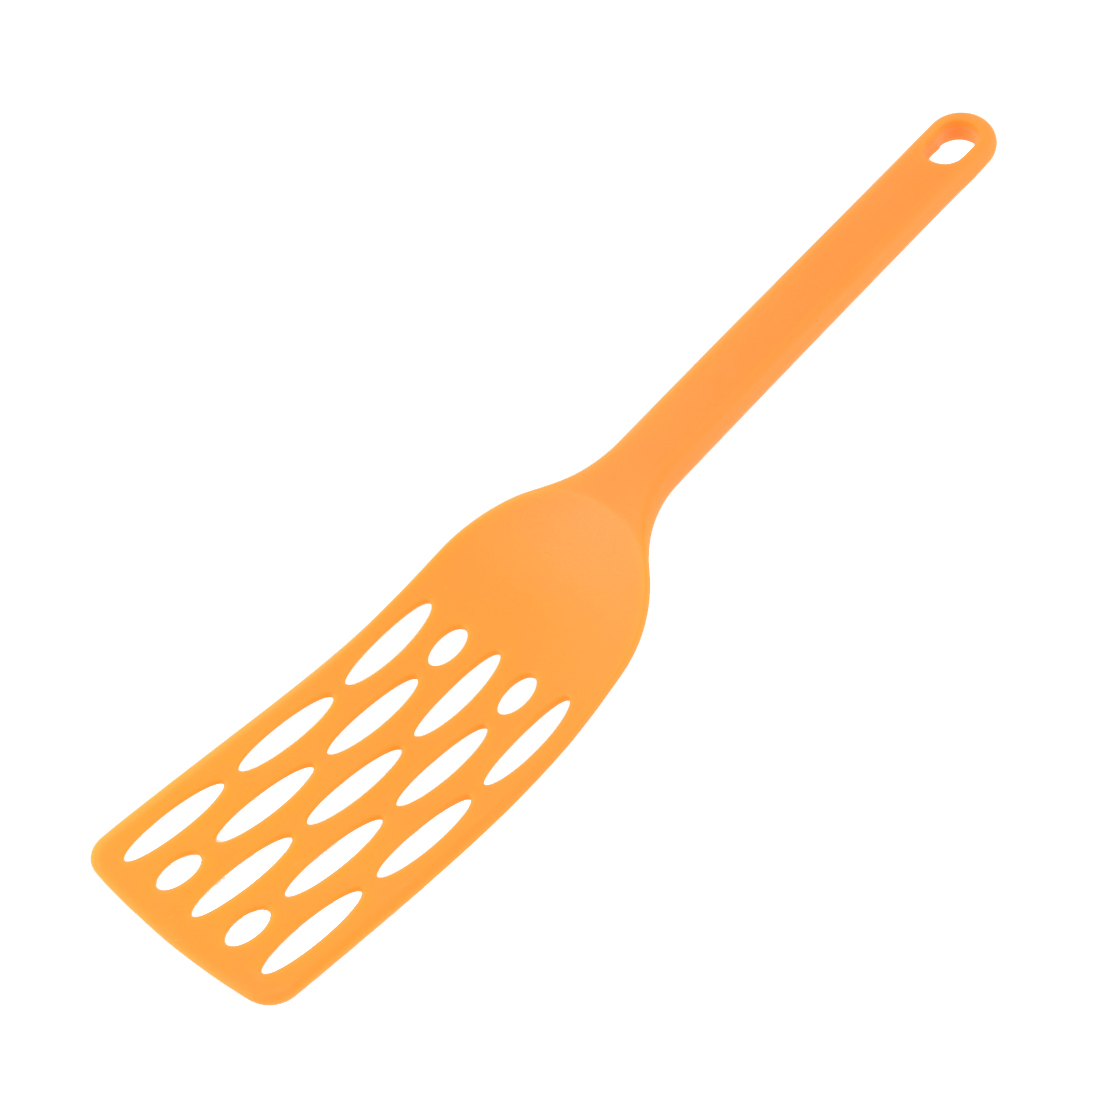 Kitchenware Cooking Plastic Stir Slotted Spatula Orange 31cm Length